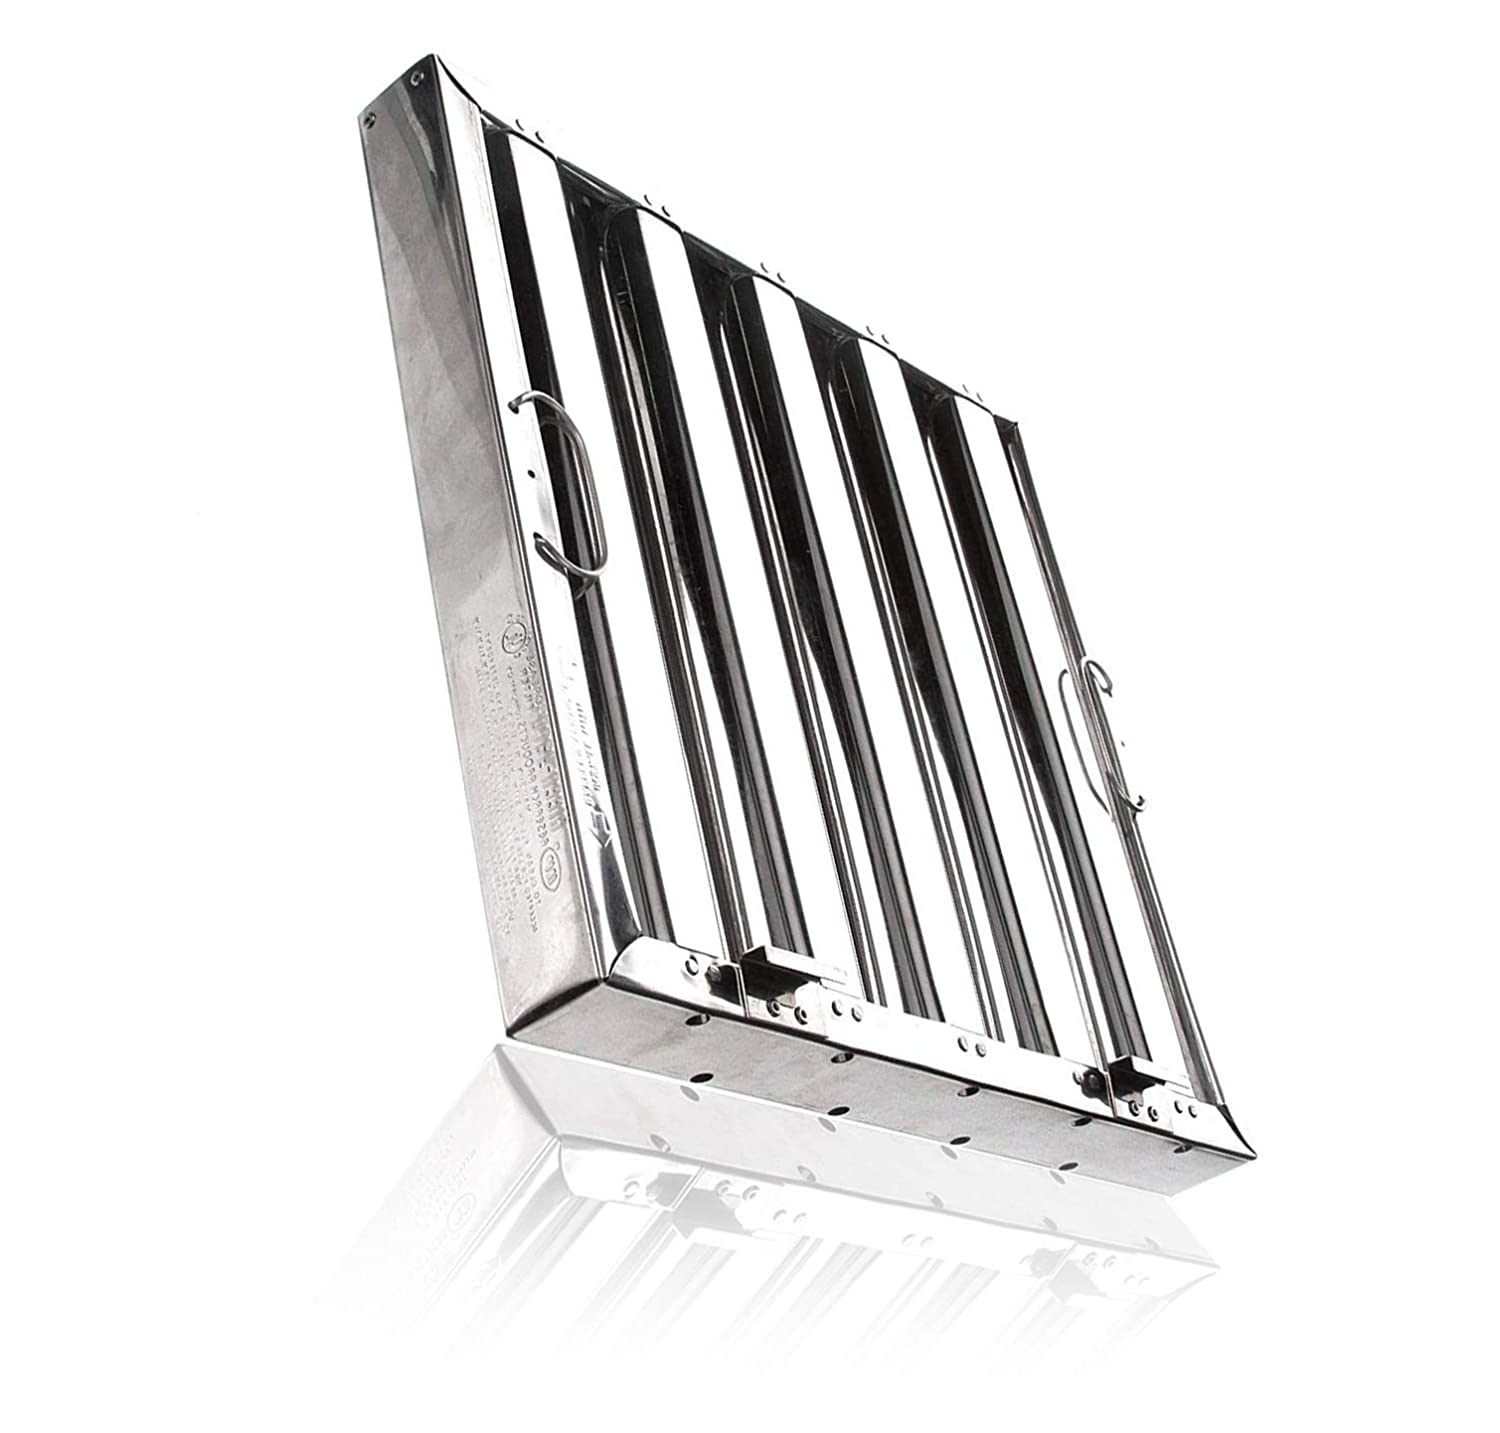 Captive Aire Systems Stainless Steel Restaurant Hood Filter, 16' high x 20' wide 16 high x 20 wide